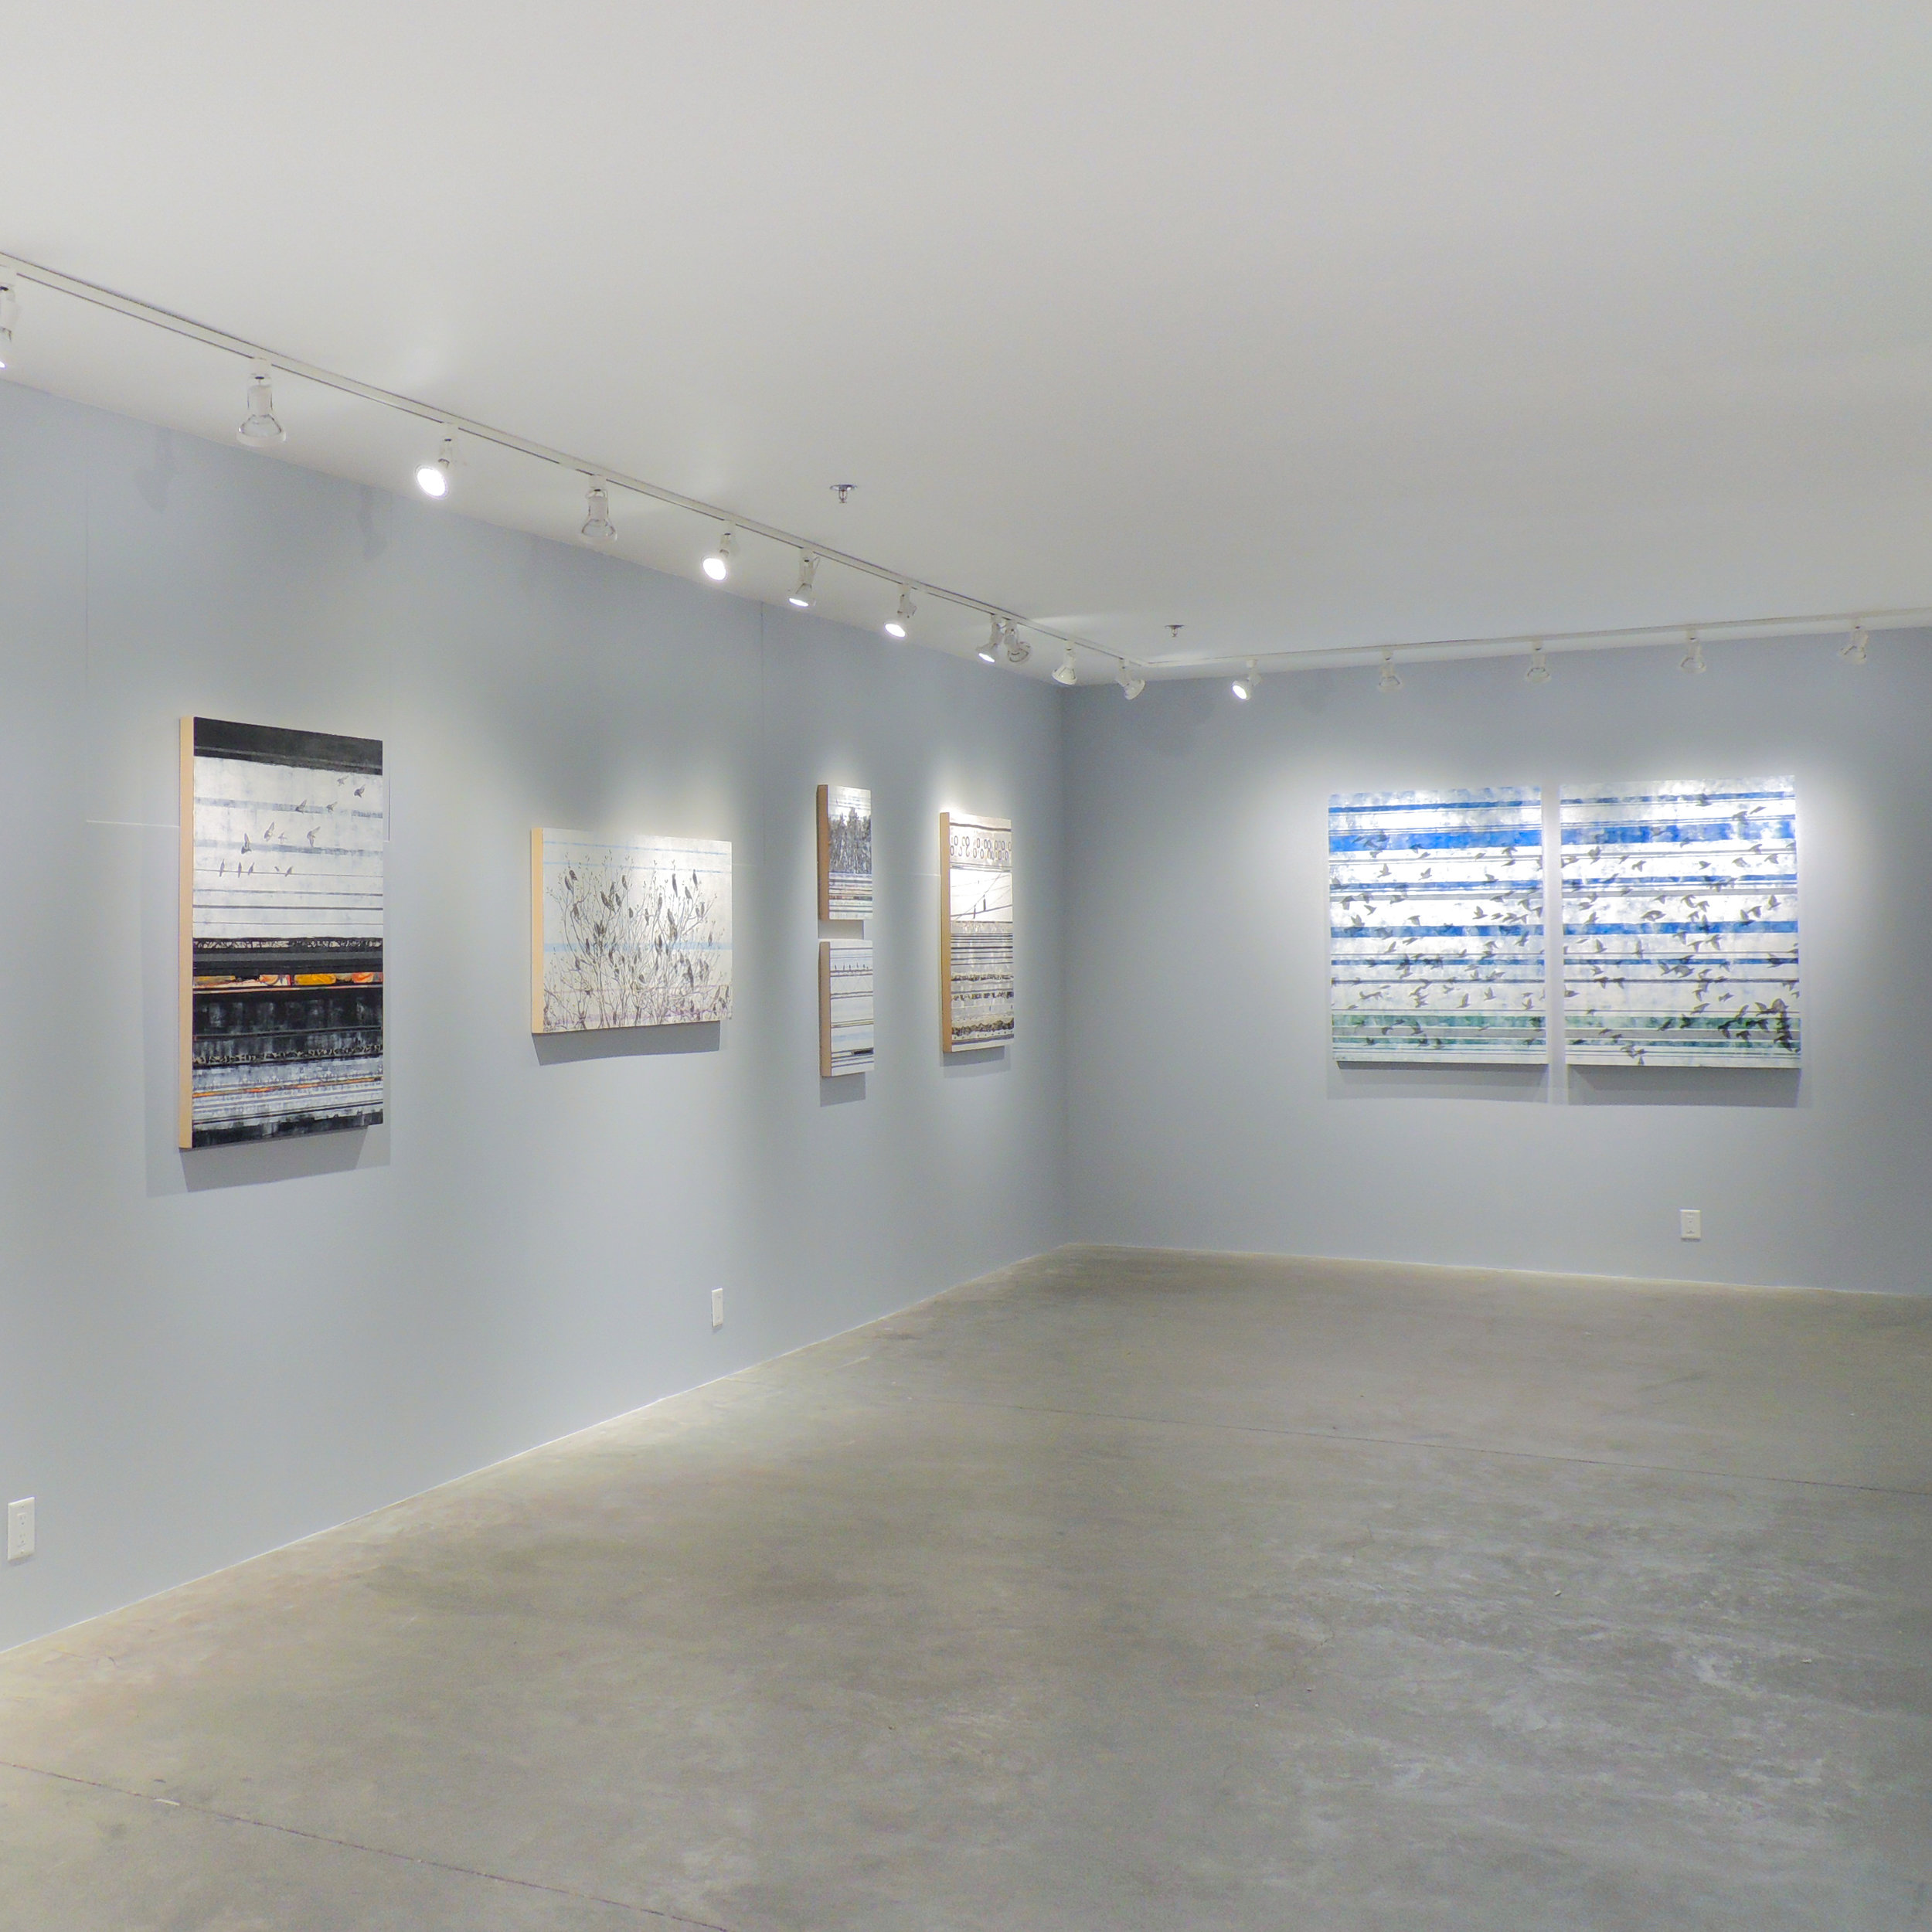 HOLLY HARRISON: THE LANGUAGE OF LINES  February 5 – February 28, 2016